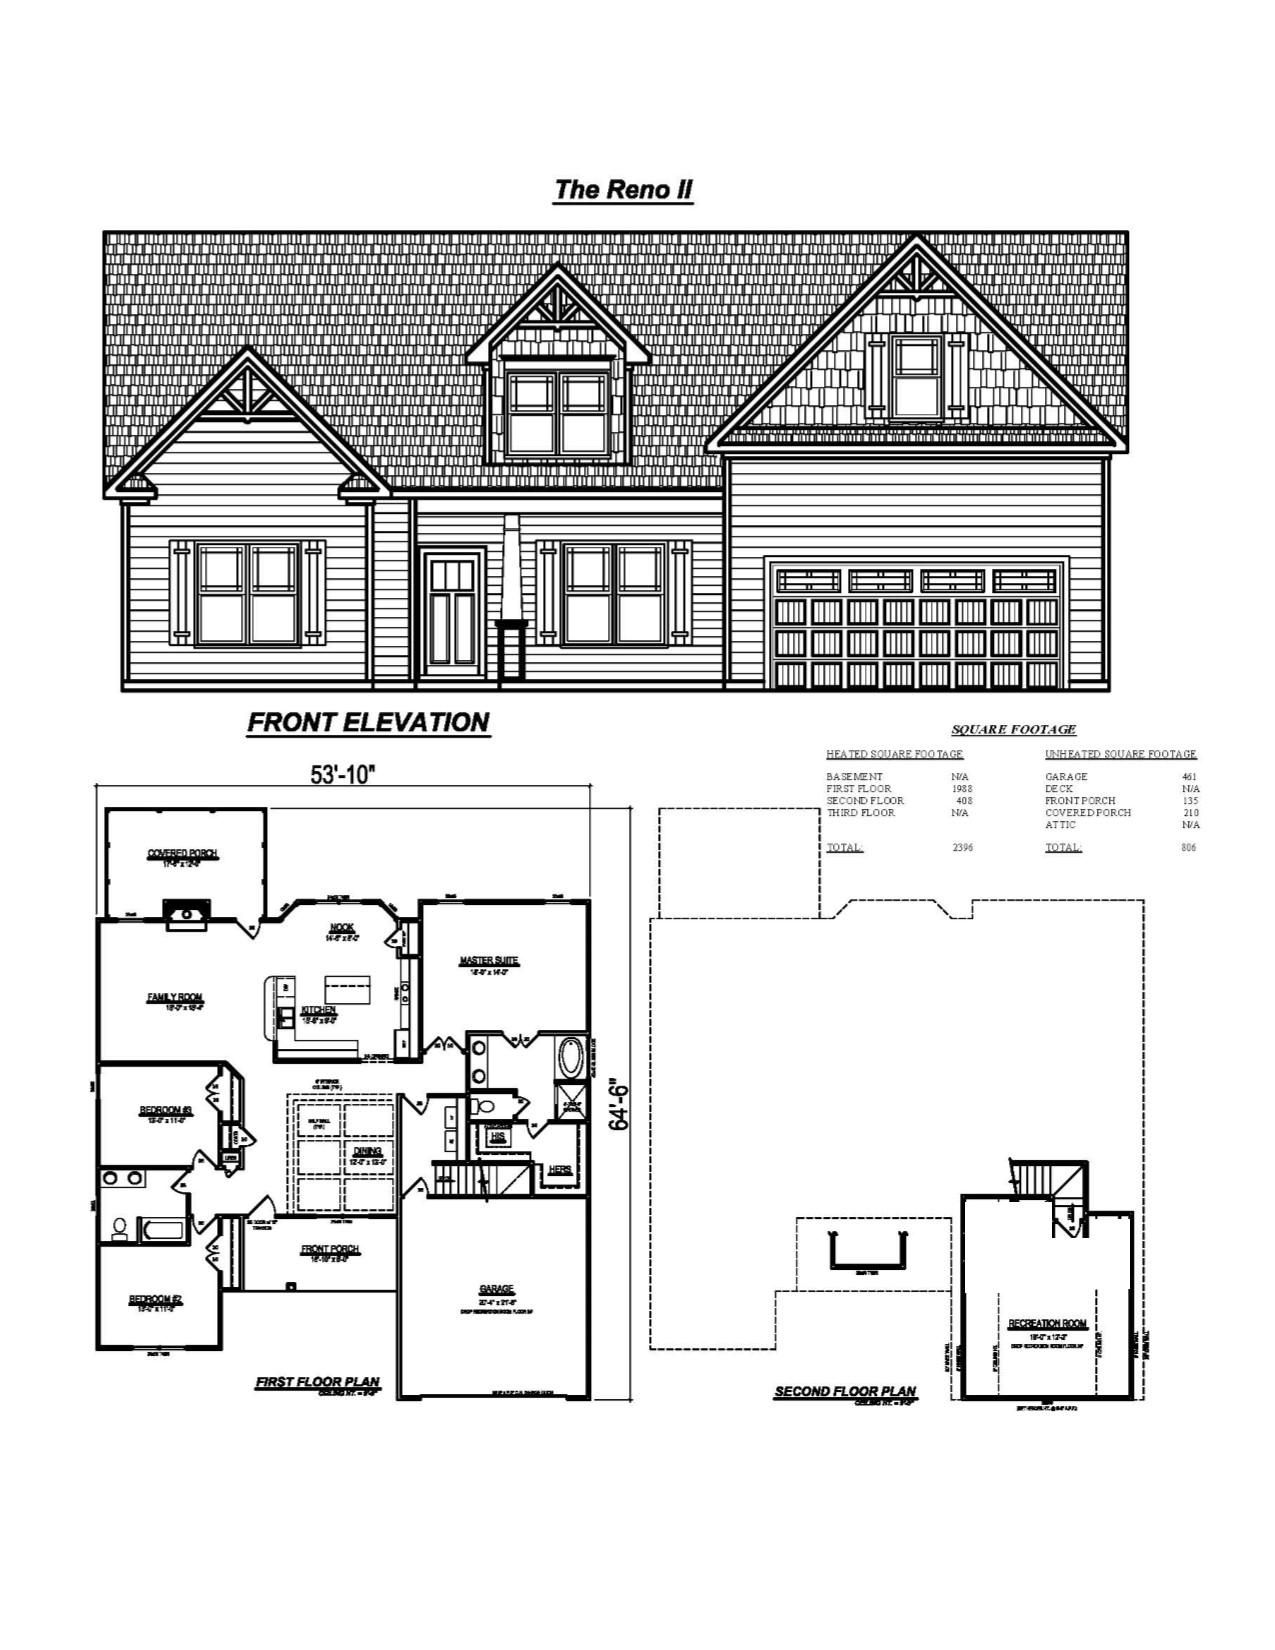 Reno ii home builders raleigh nc wynn homes